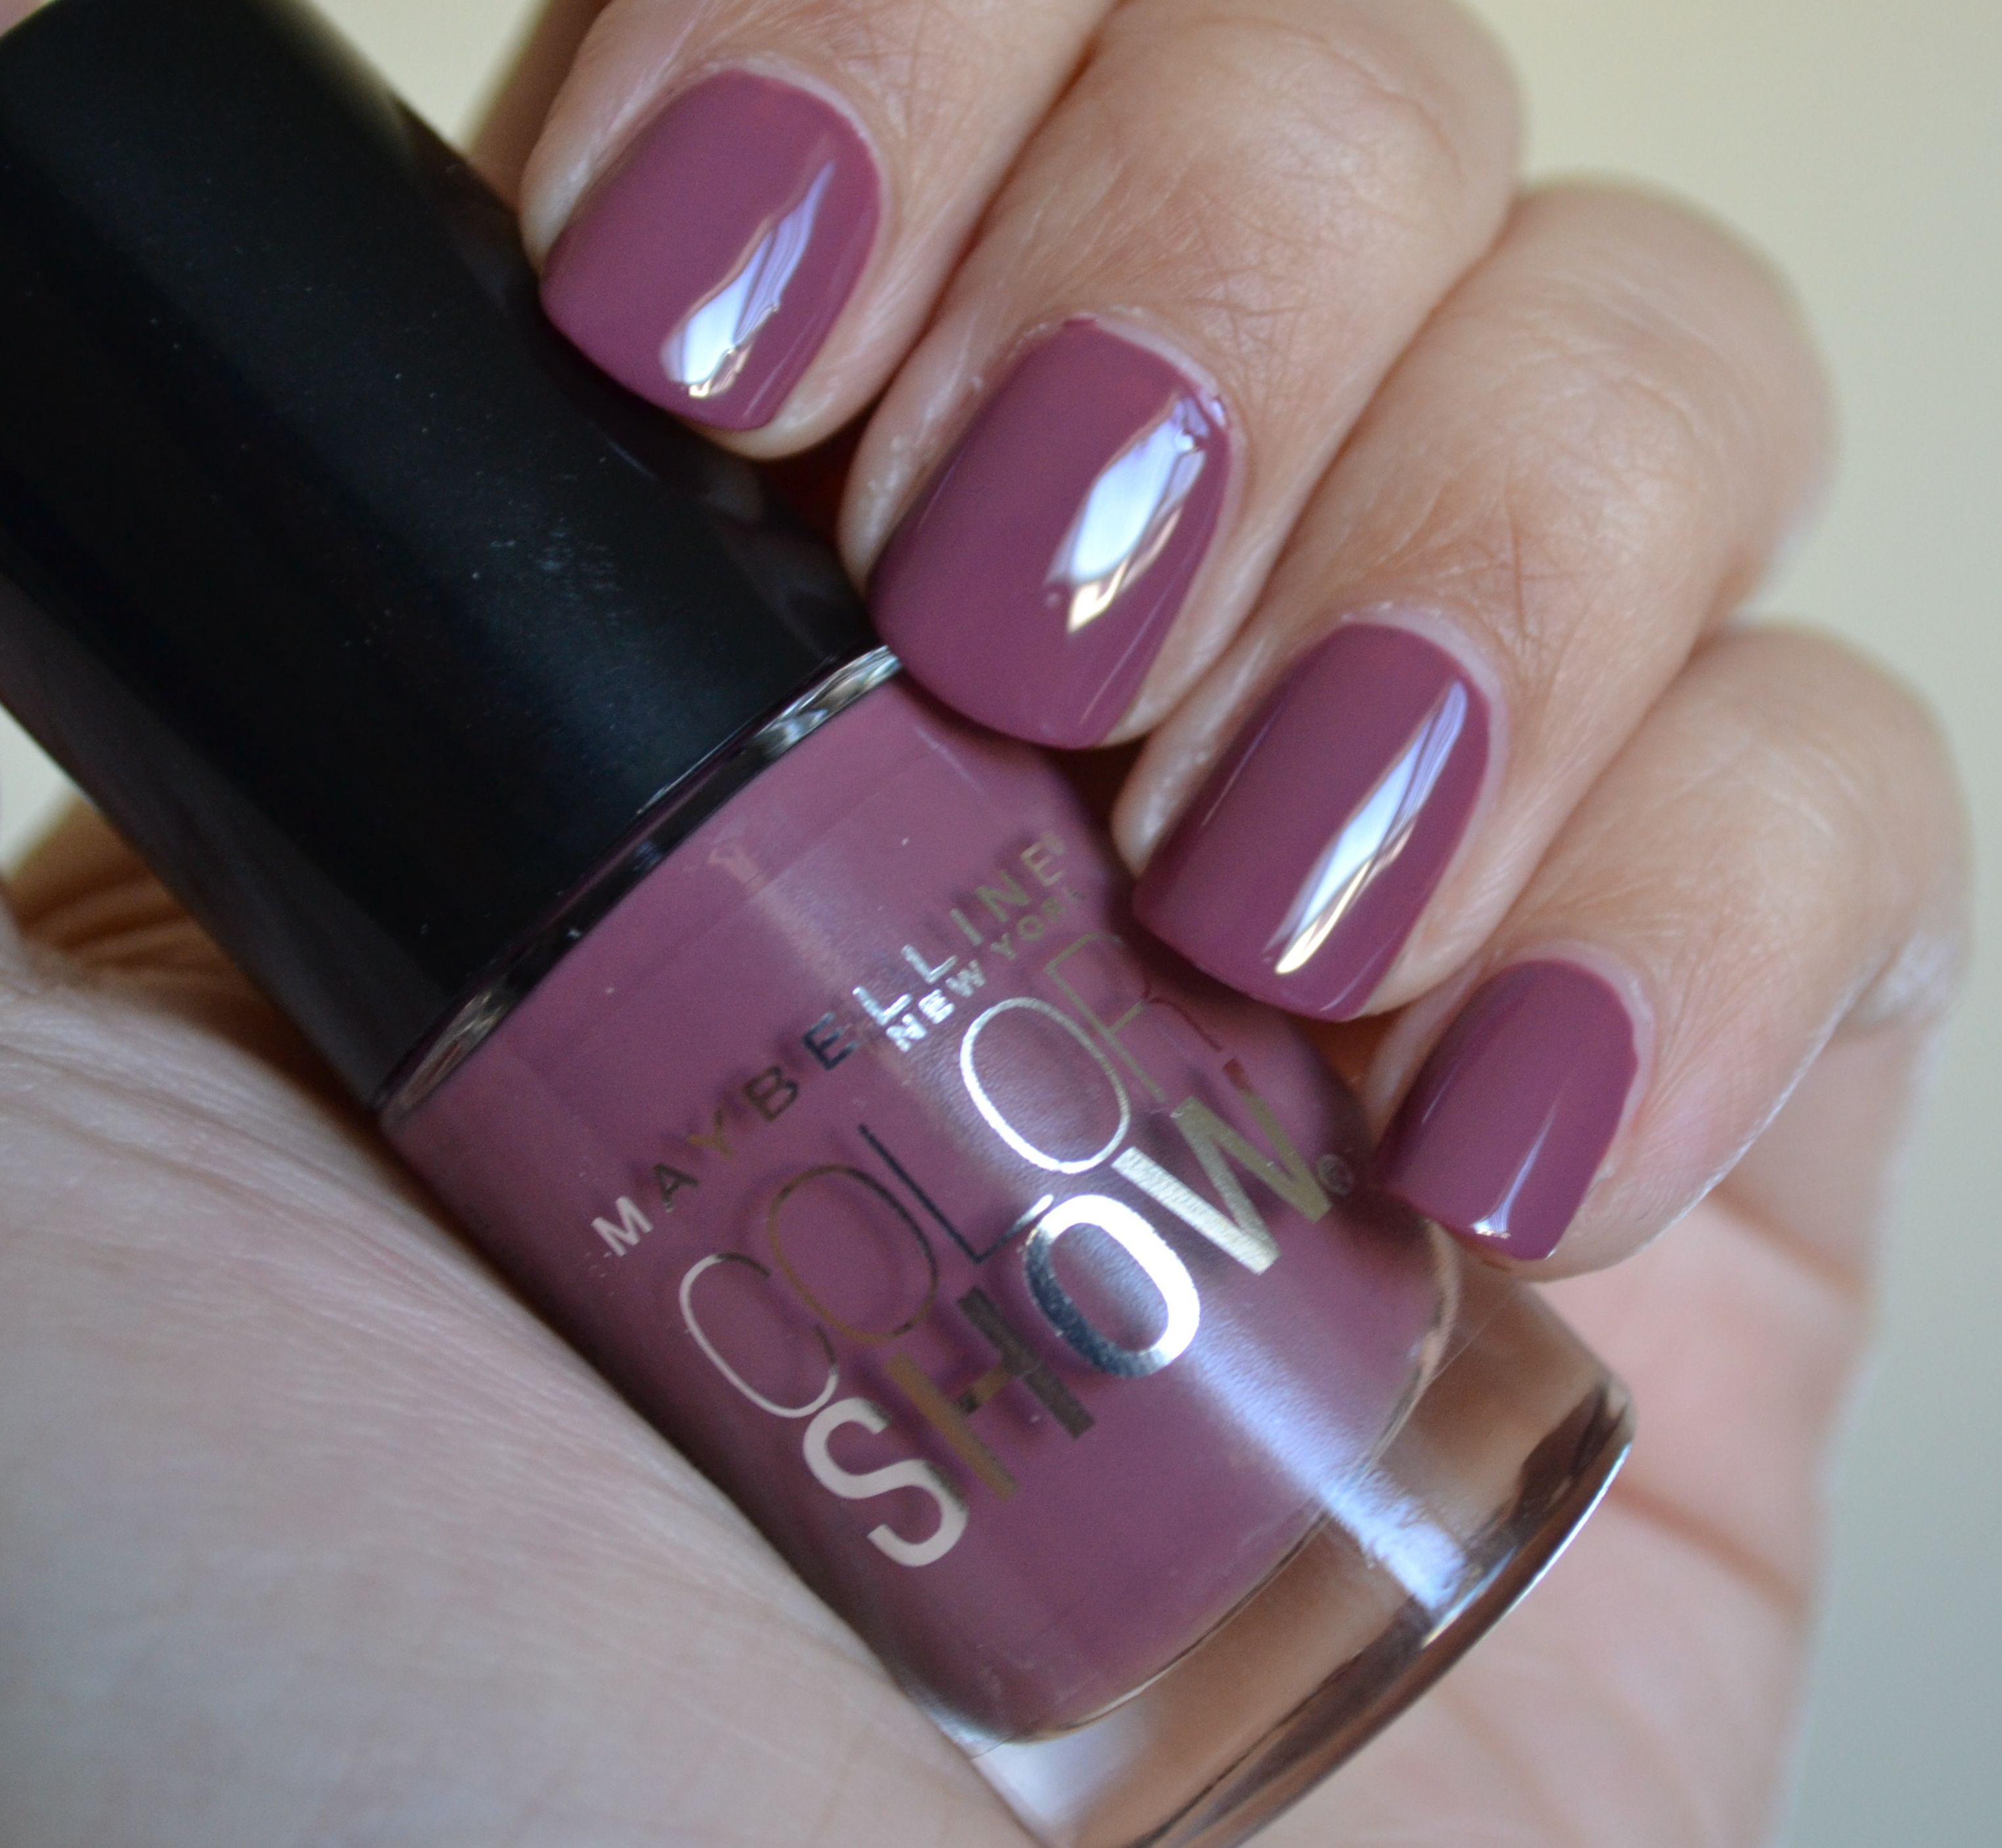 Maybelline Mauve In Manhattan   Nail Swatches   Pinterest   Mauve ...